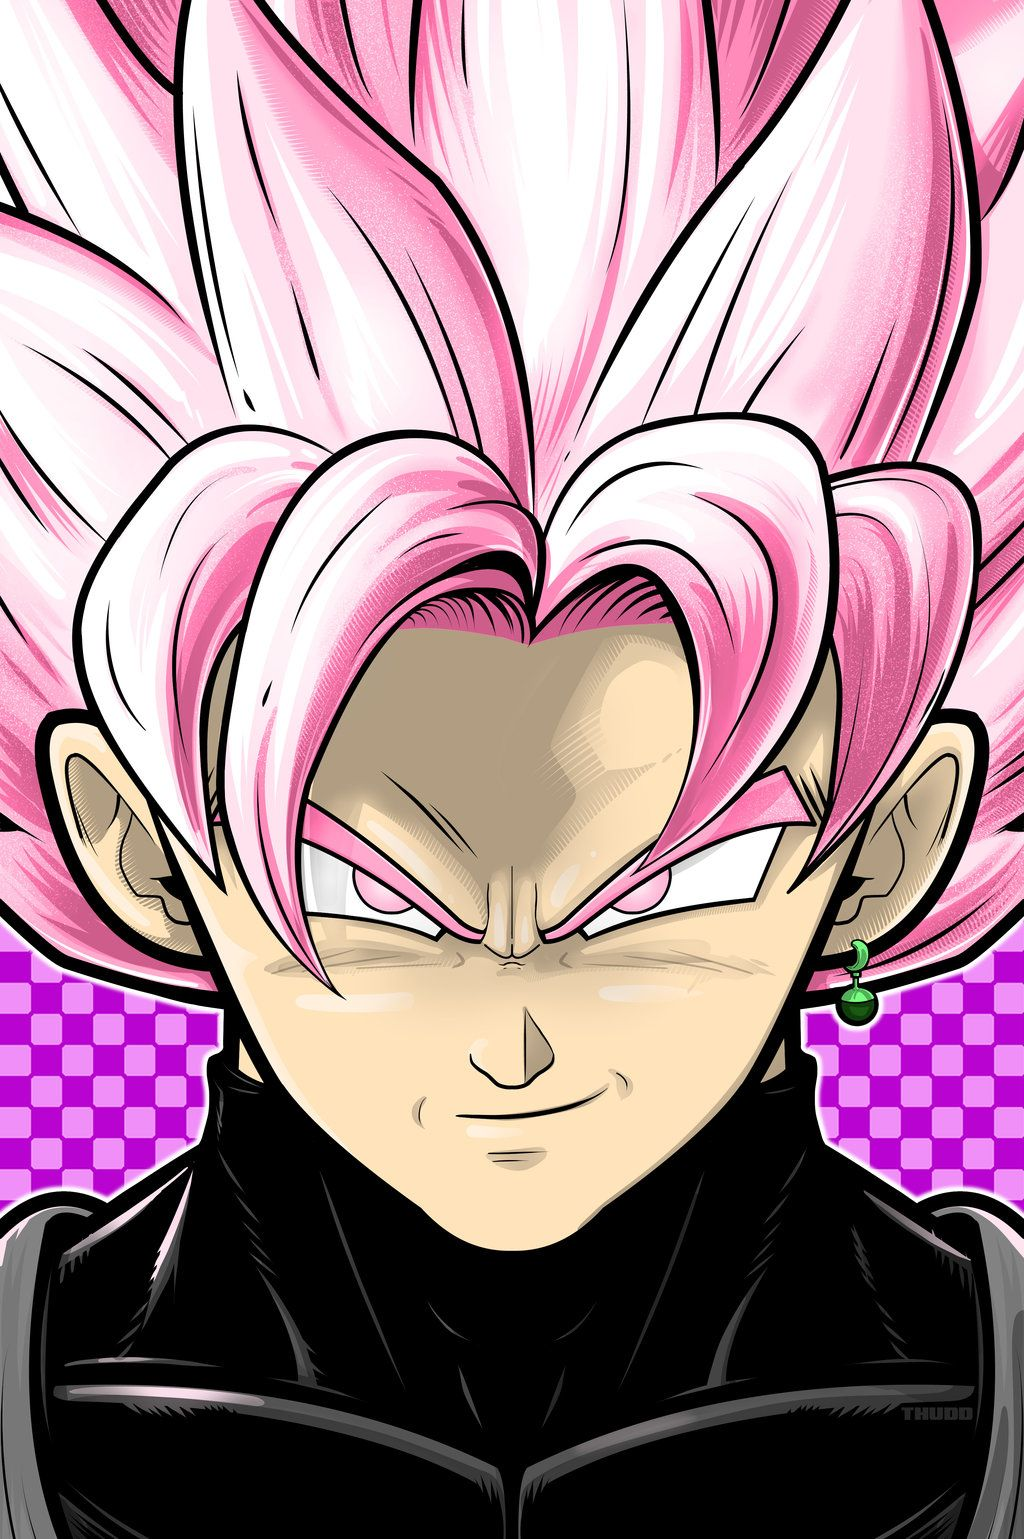 List of Most Downloaded Goku Black Wallpaper Iphone for iPhone 11 Pro Max Today